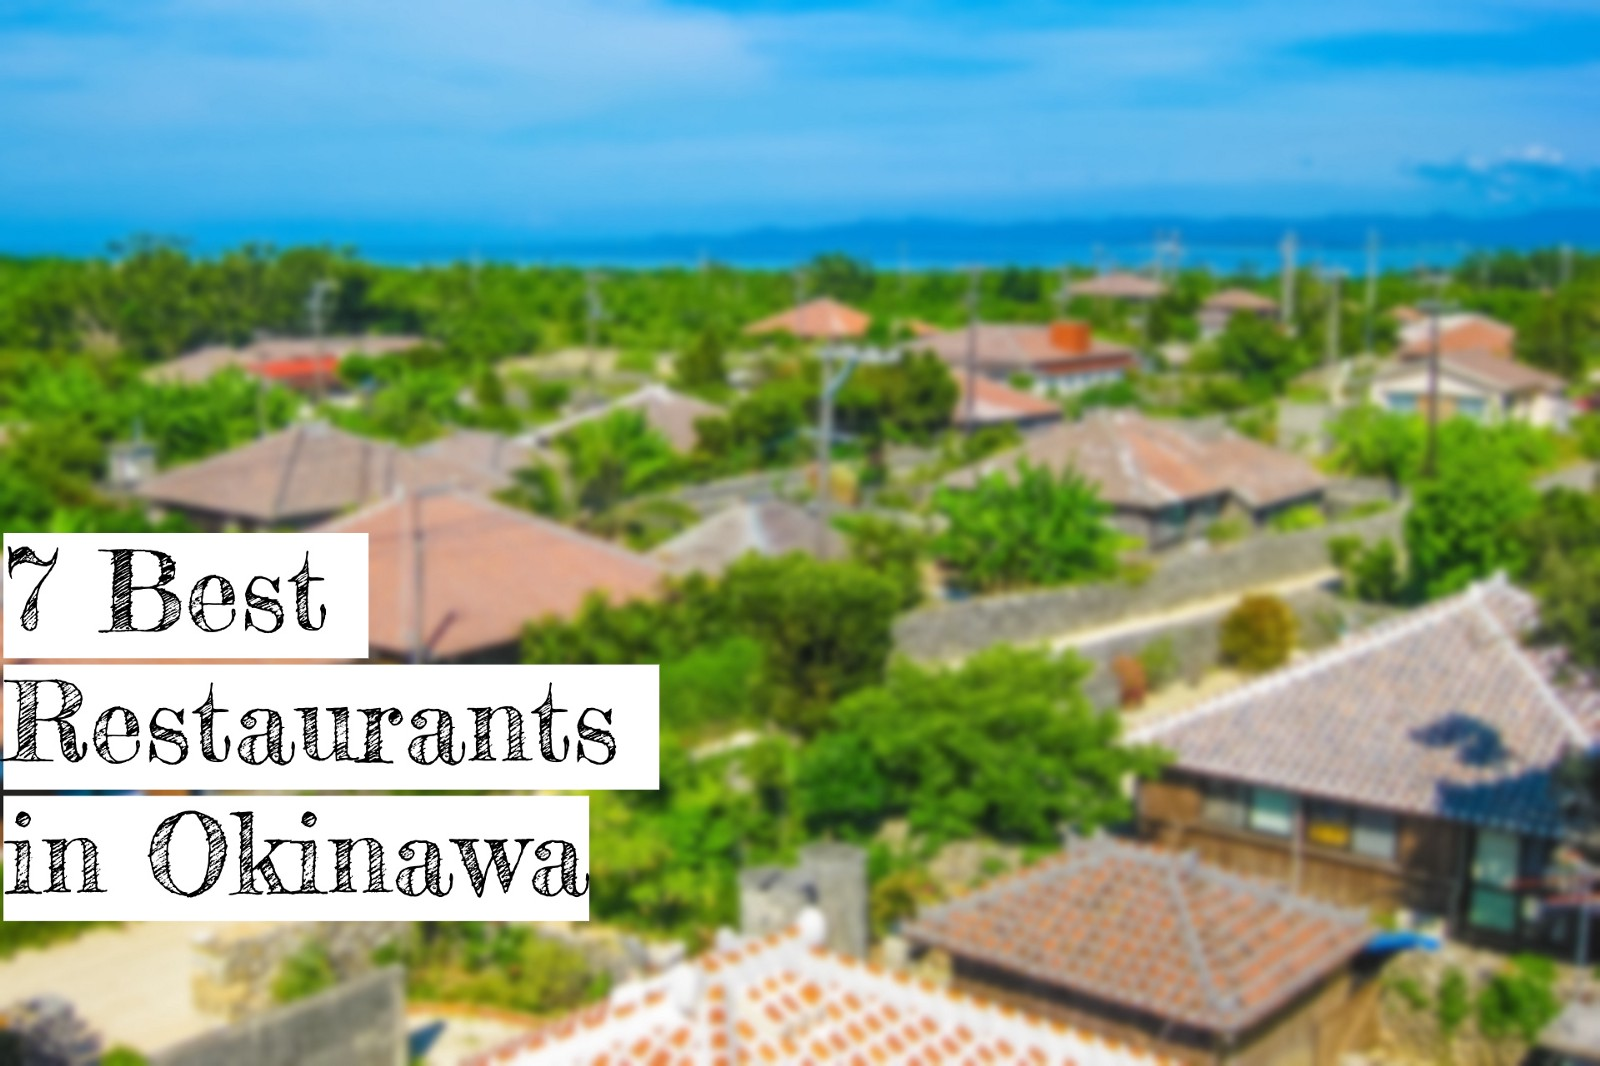 Okinawa Restaurant Guide: 7 Best Restaurants in Okinawa 2020